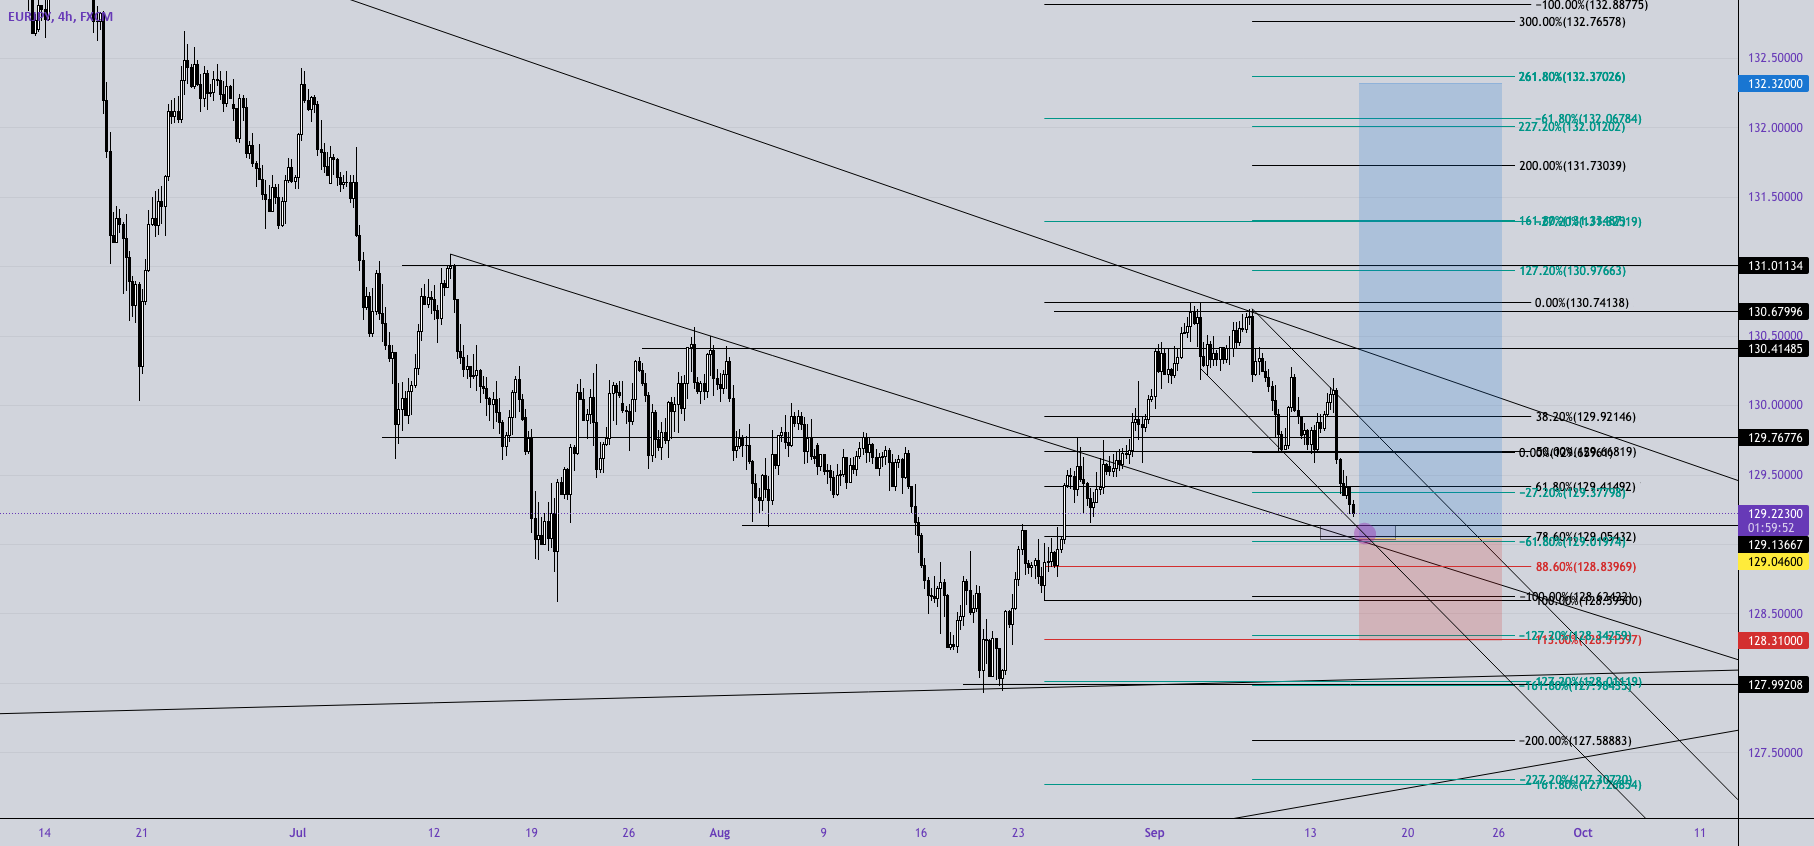 I will miss you Suga for FX:EURJPY by fobonacci